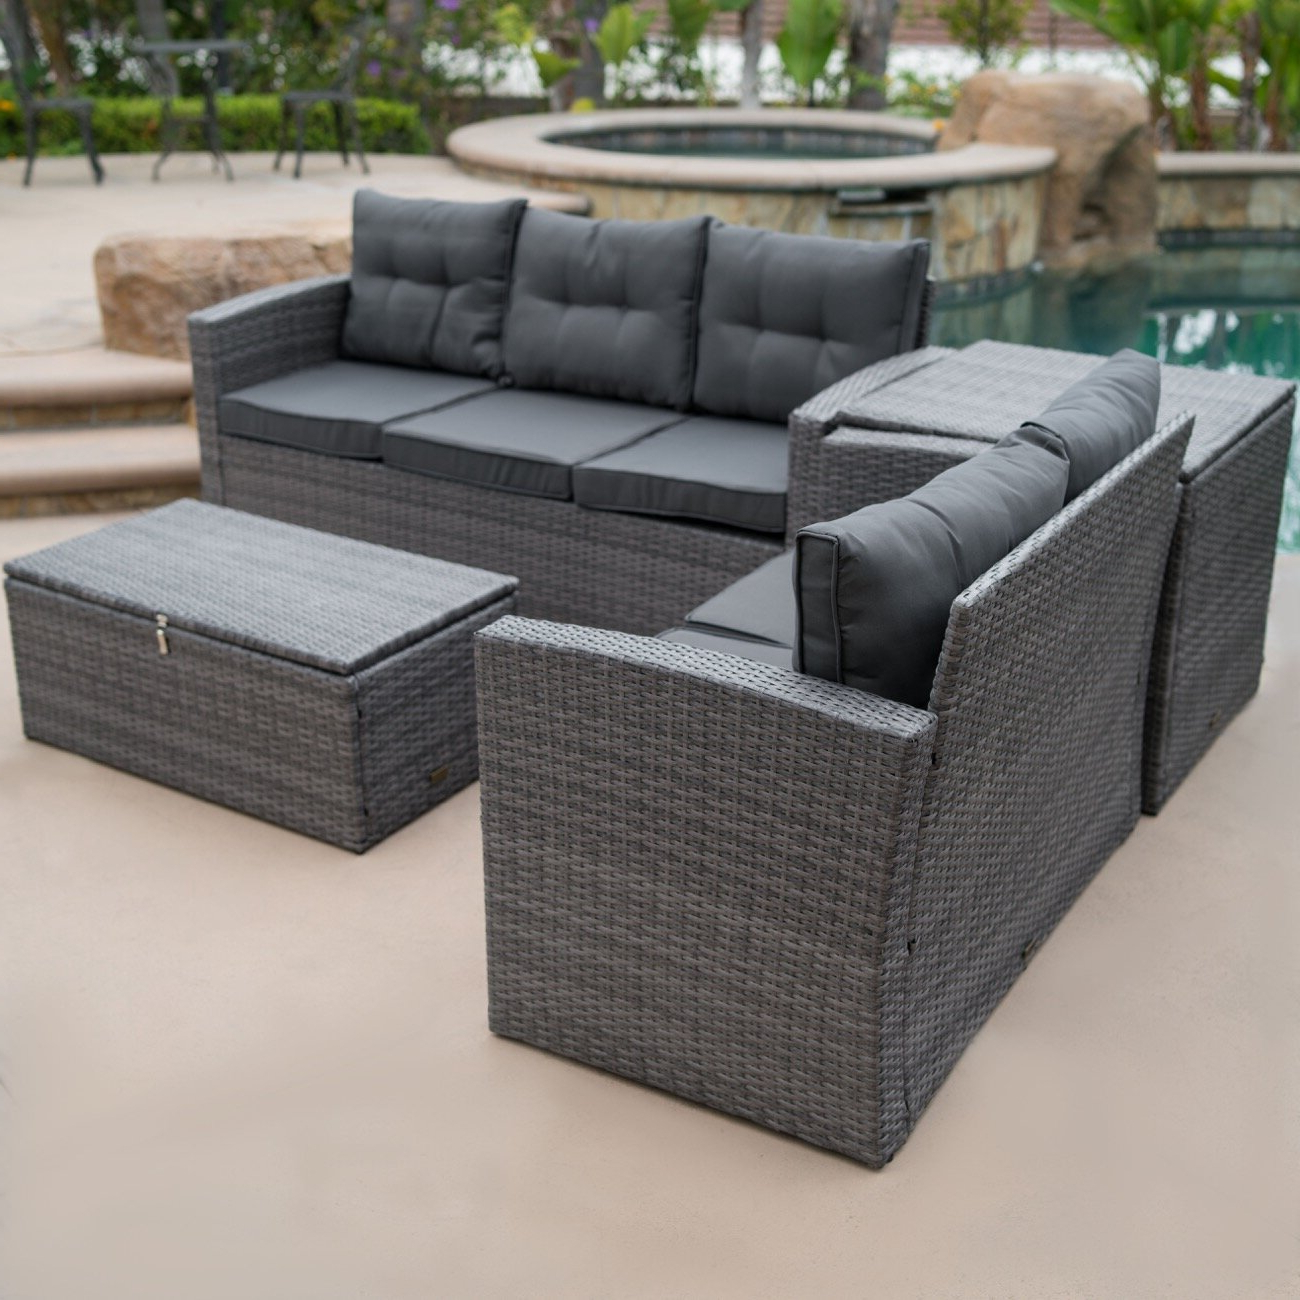 Most Current Repp Patio Sofas With Cushion Within Rowley Patio Sofa Set With Cushions (View 14 of 25)